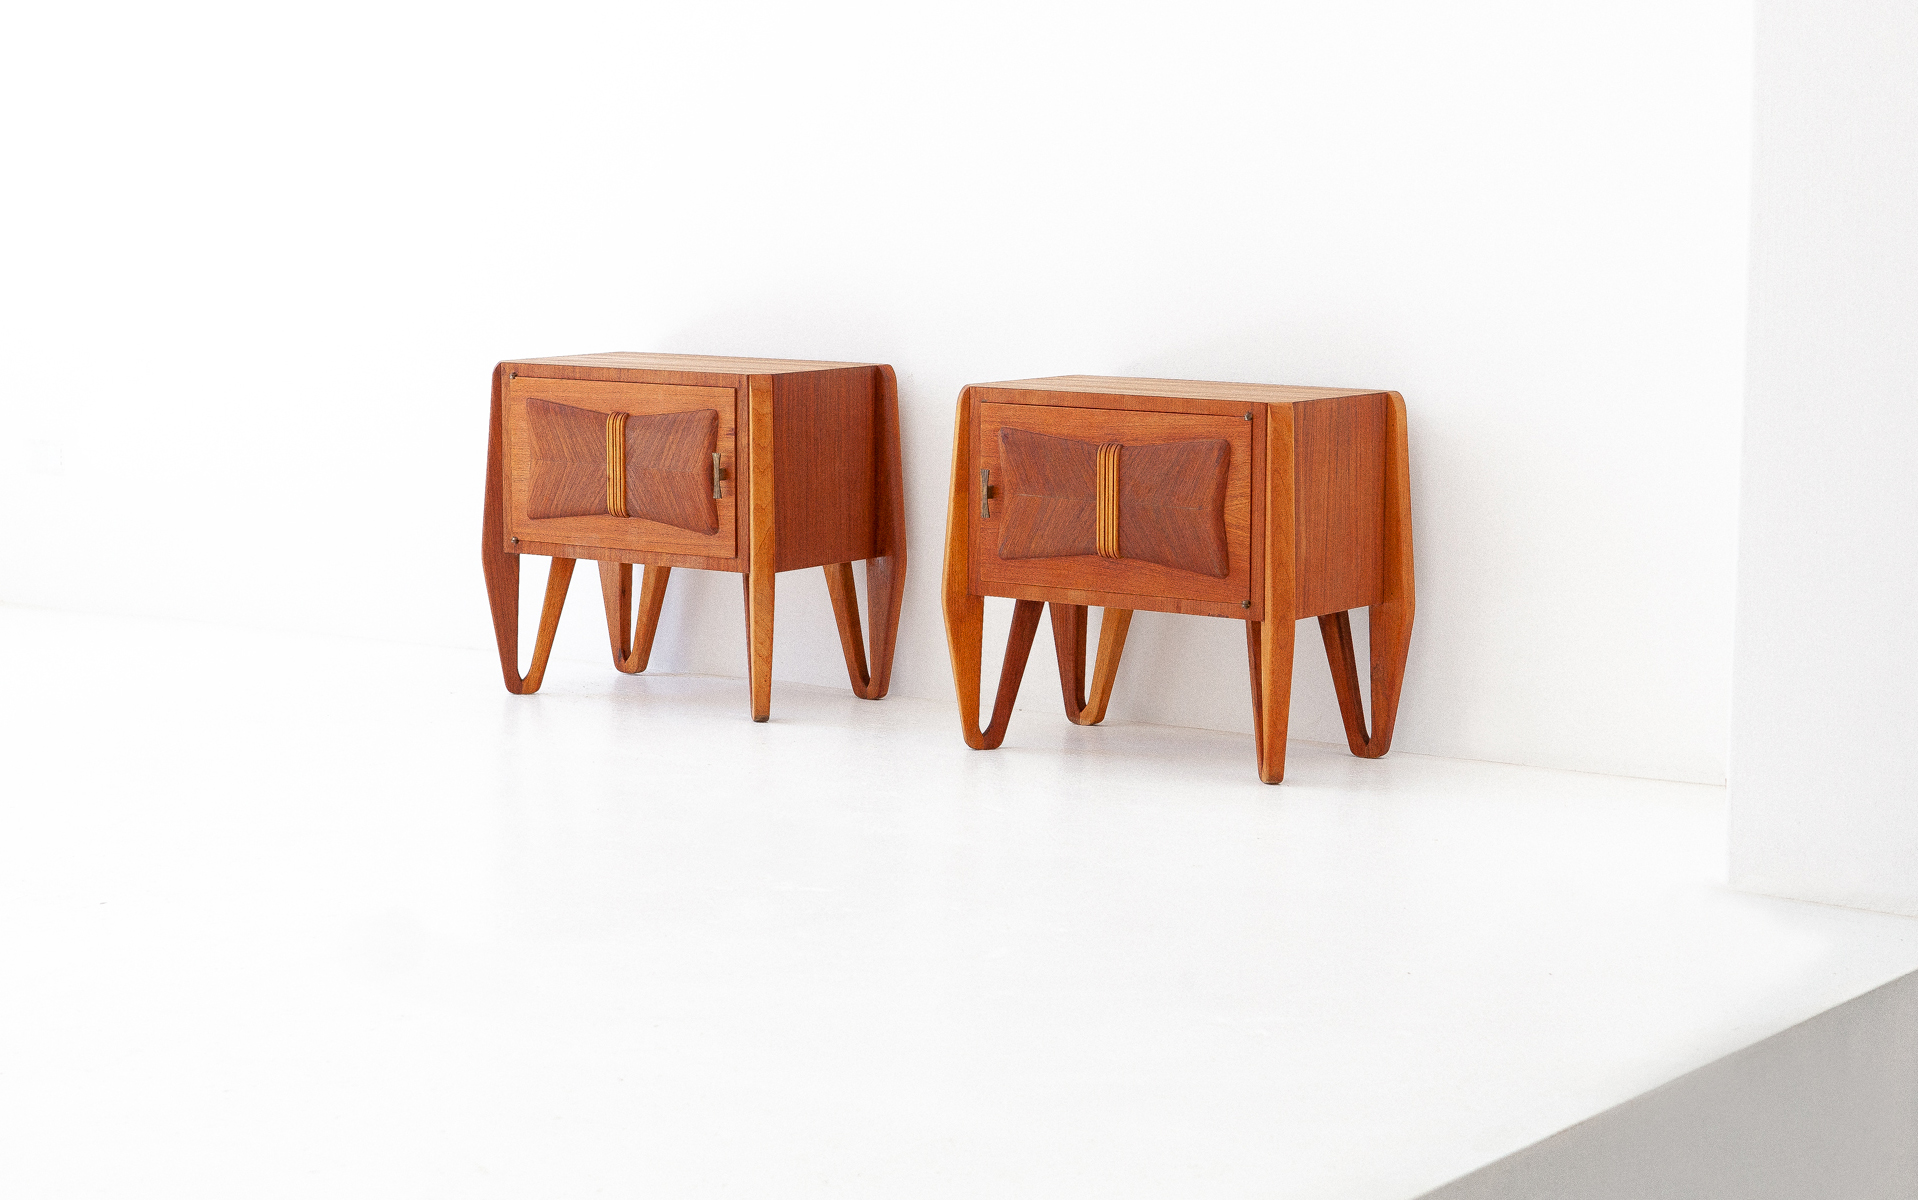 1950s-italian-teak-nightstands-1-bt79